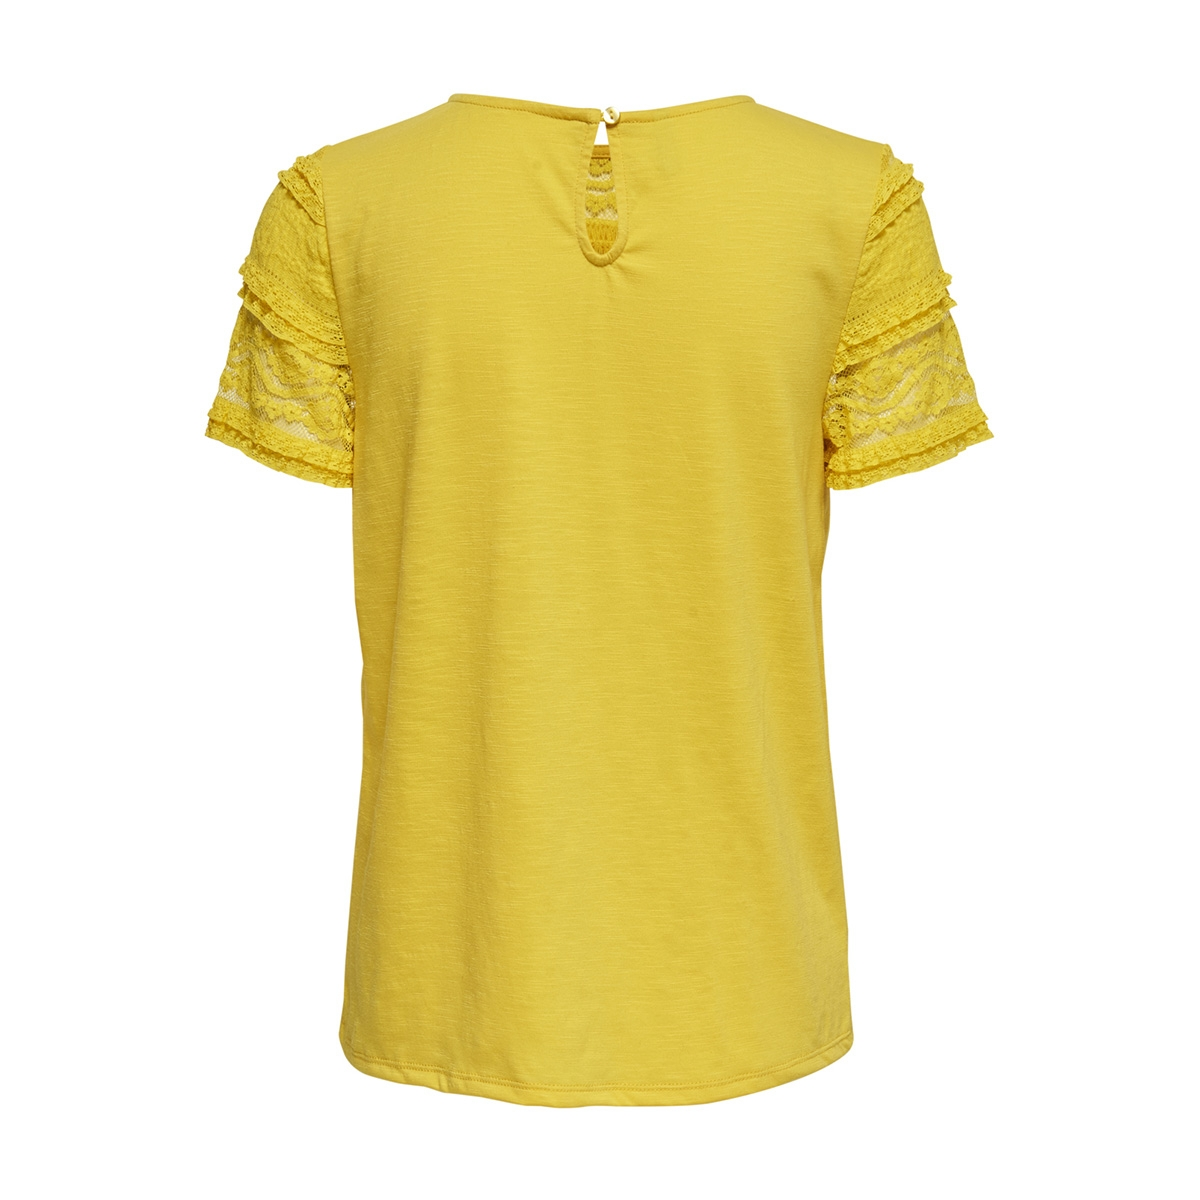 onlmarjorie s/s top jrs 15176772 only t-shirt solar power